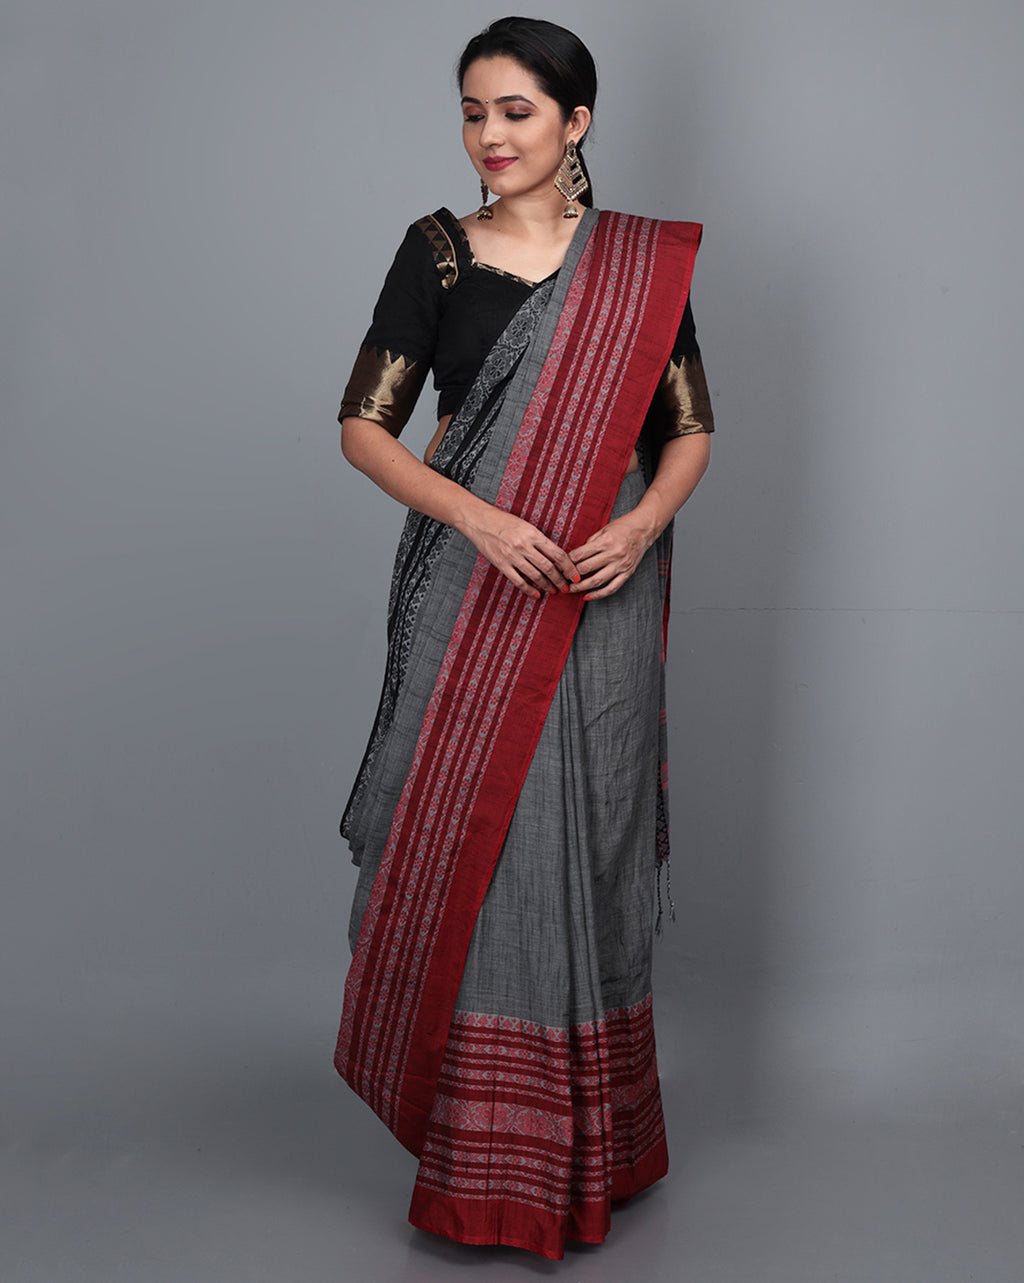 Phulia Cotton Saree with Thick and Thin Floral Borders - Grey/Red and Black